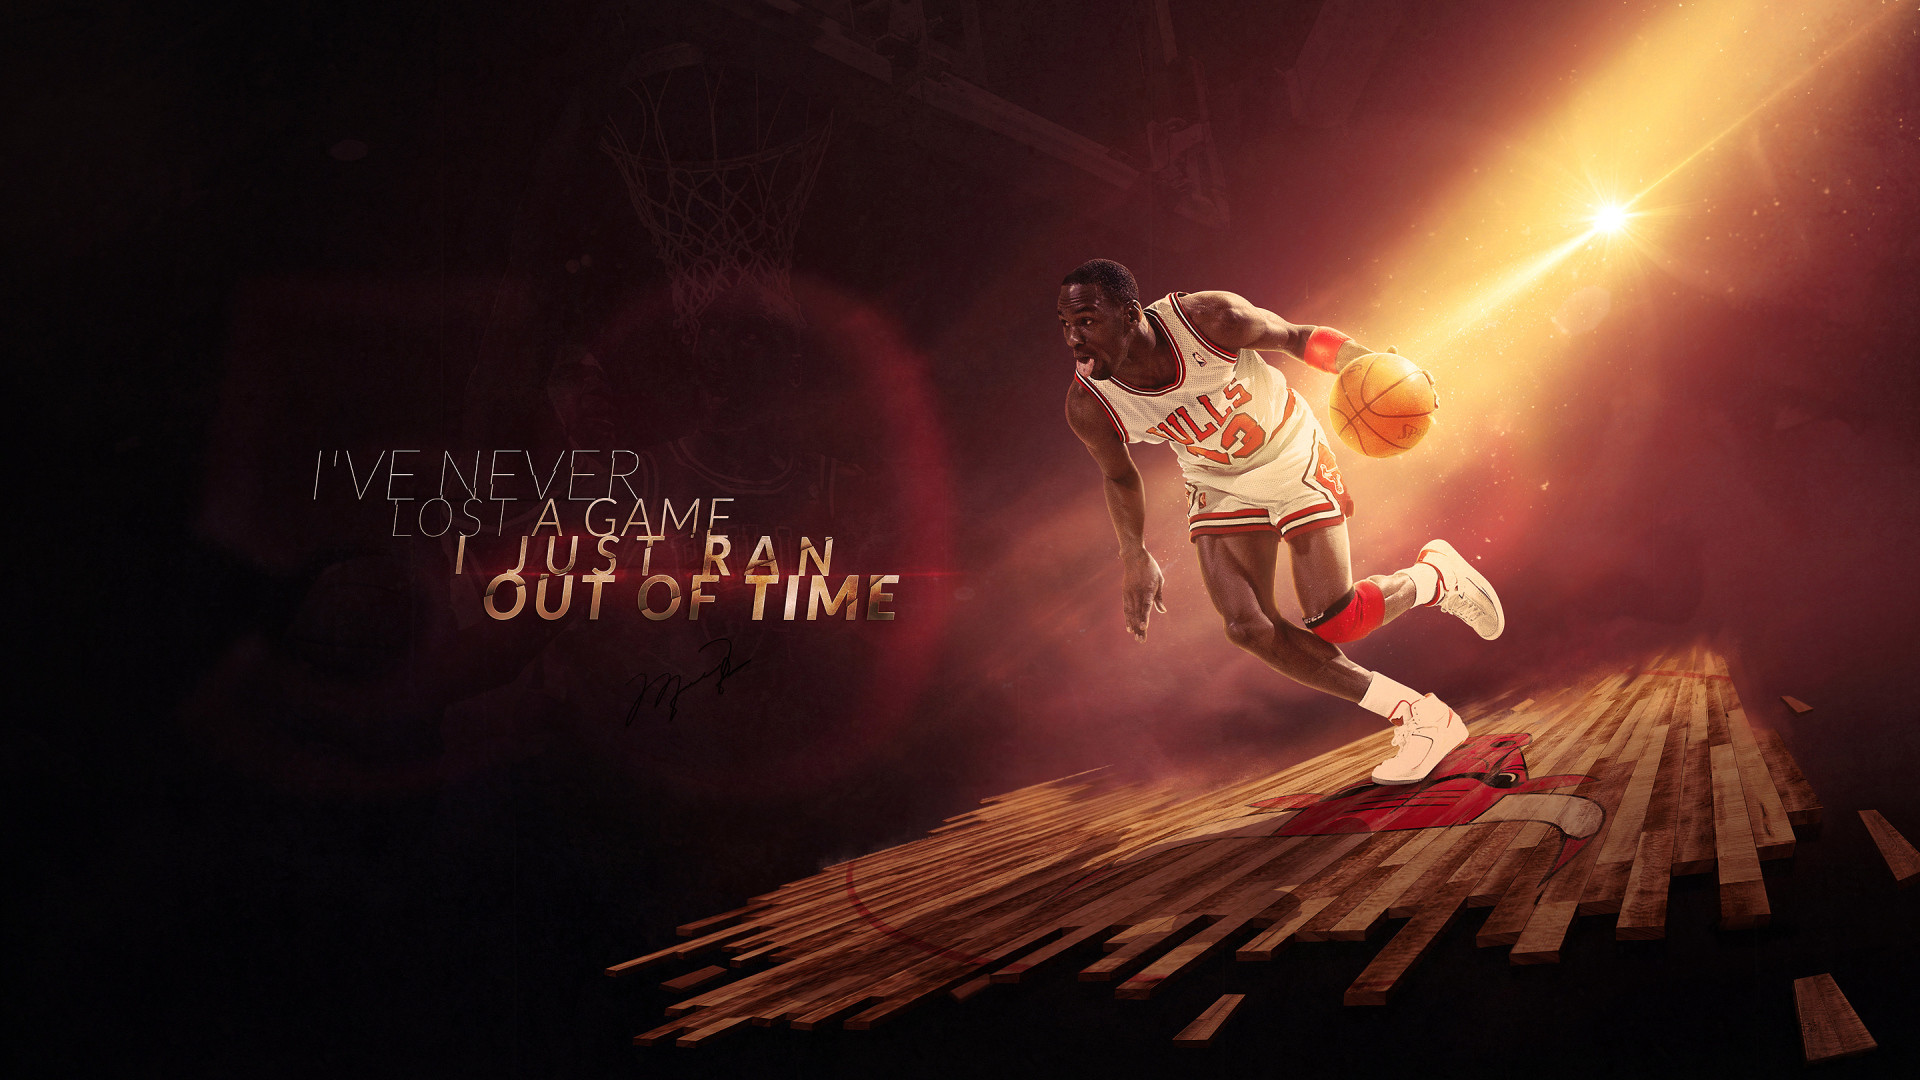 Michael Jordan Jersey Wallpaper: Michael Jordan Wallpaper 1920x1080 (74+ Images